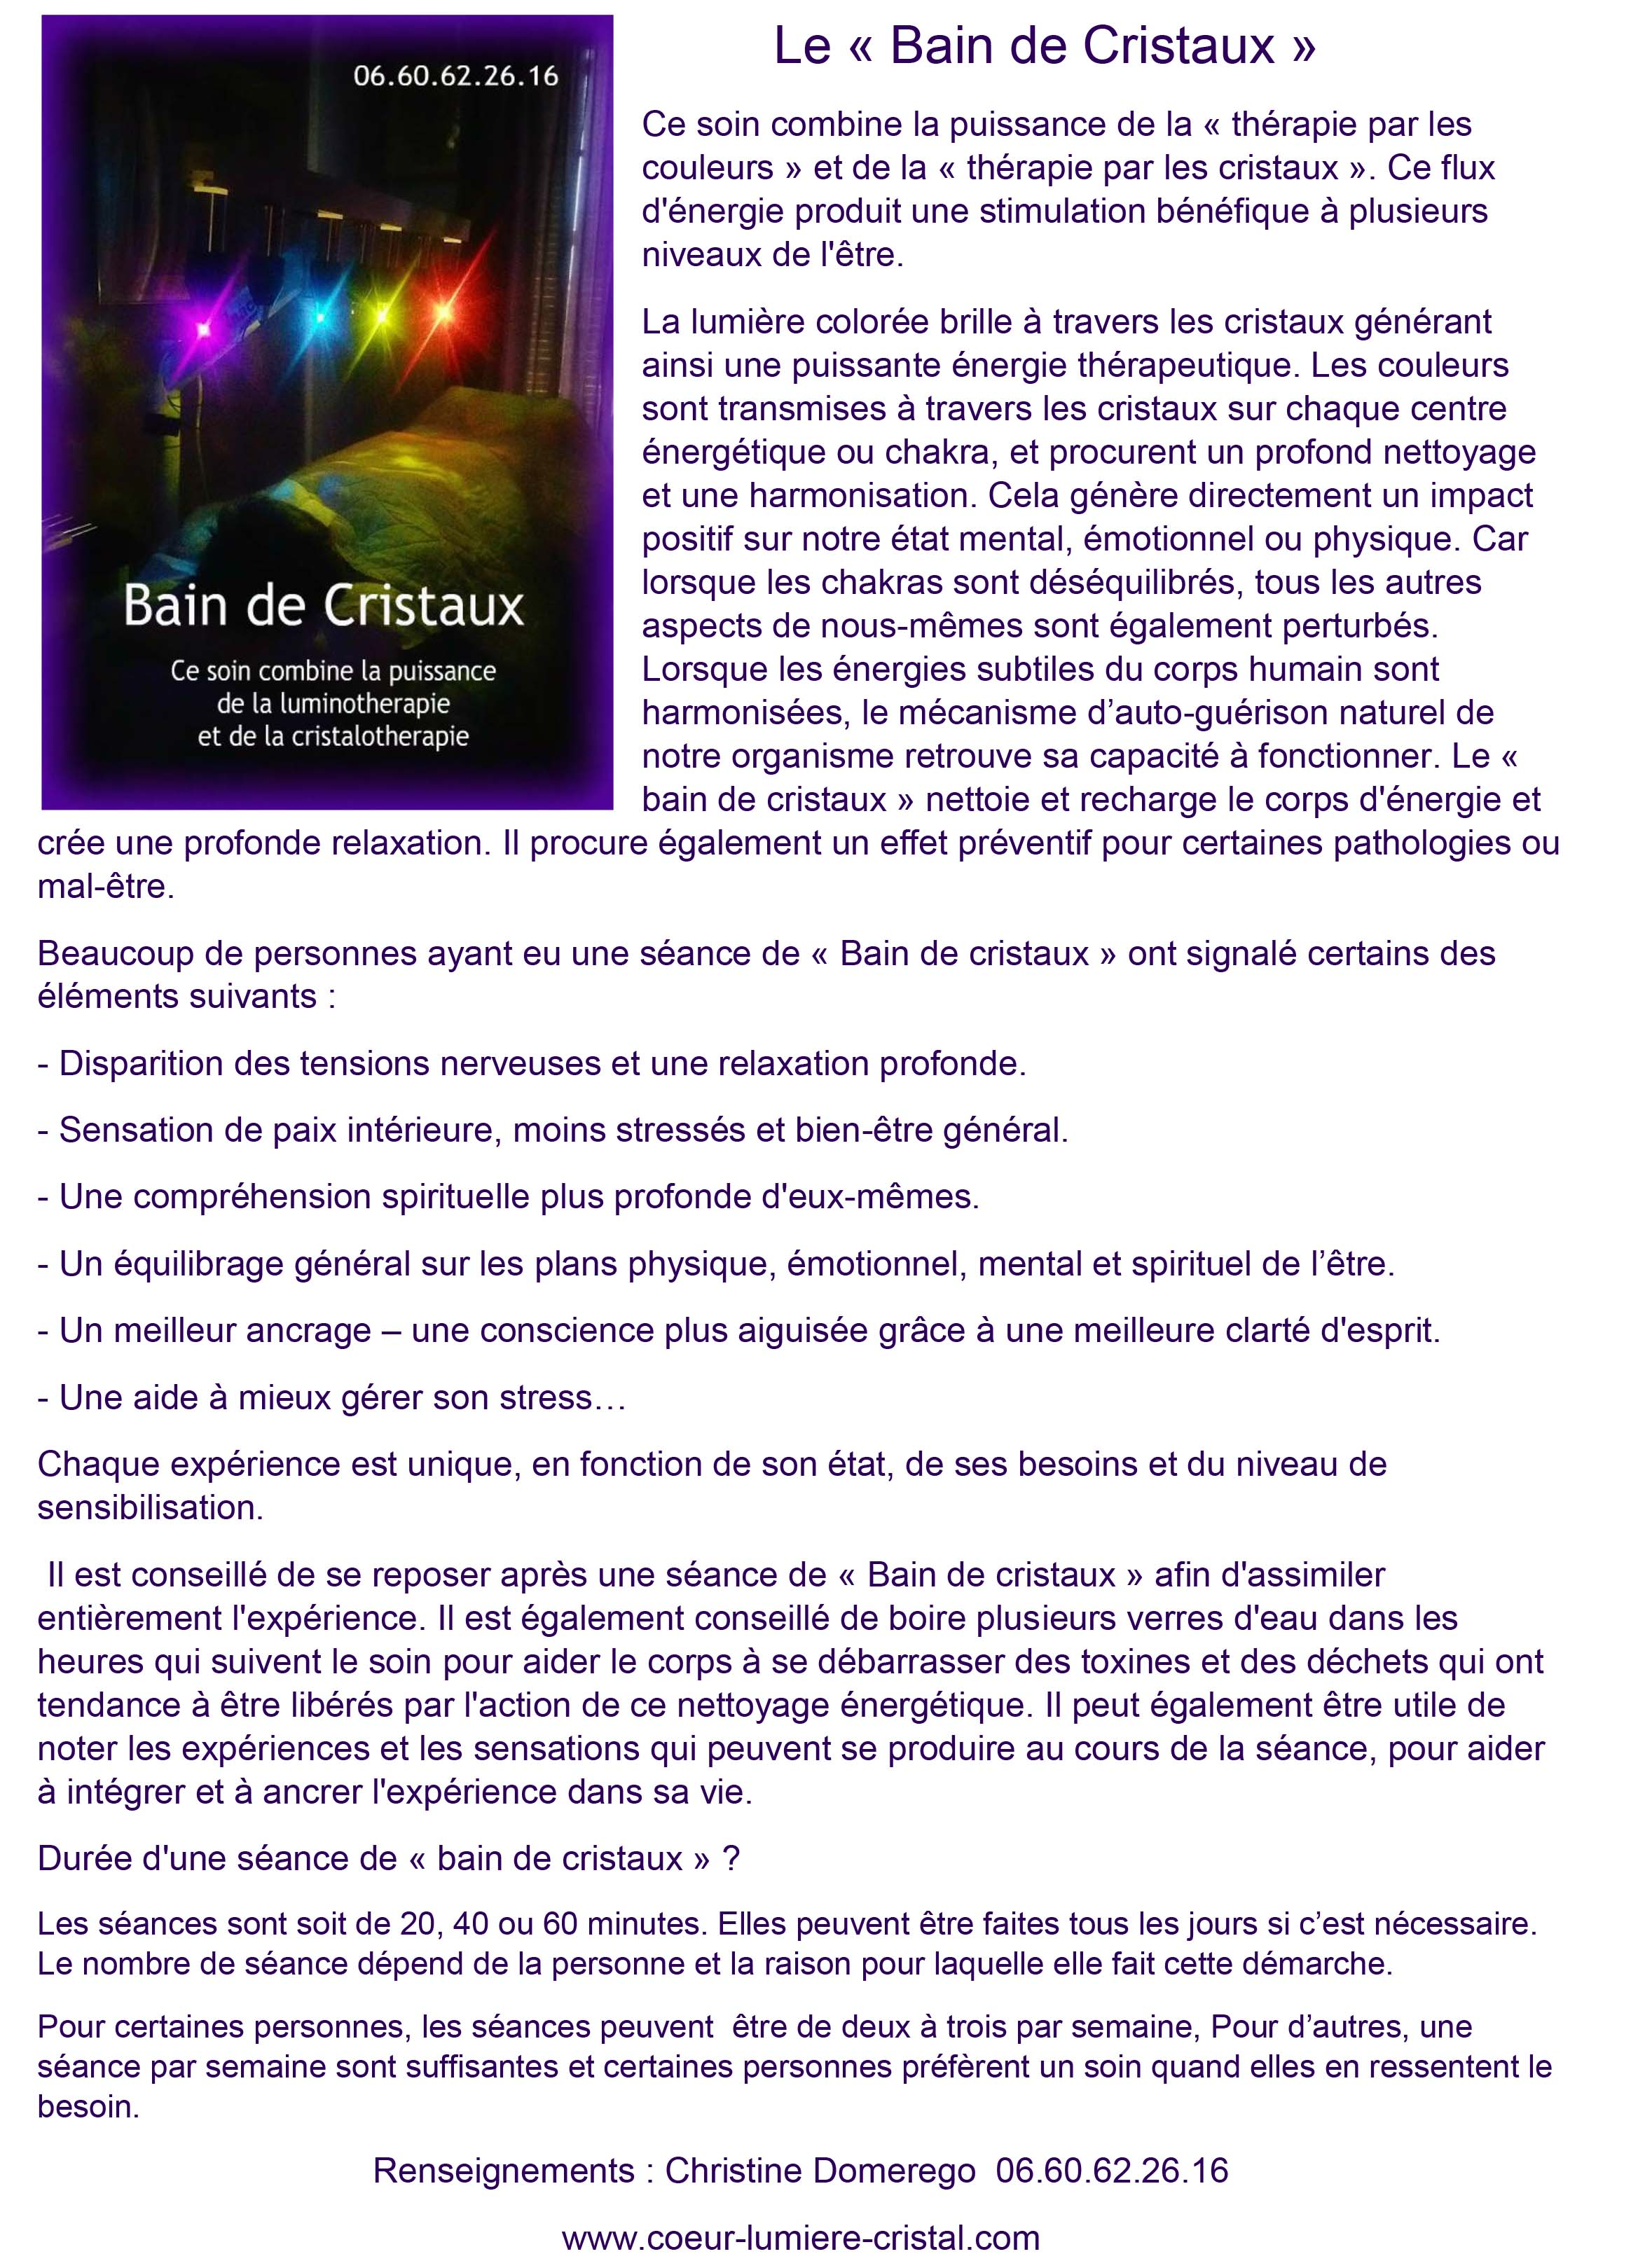 Le bain de cristaux explications